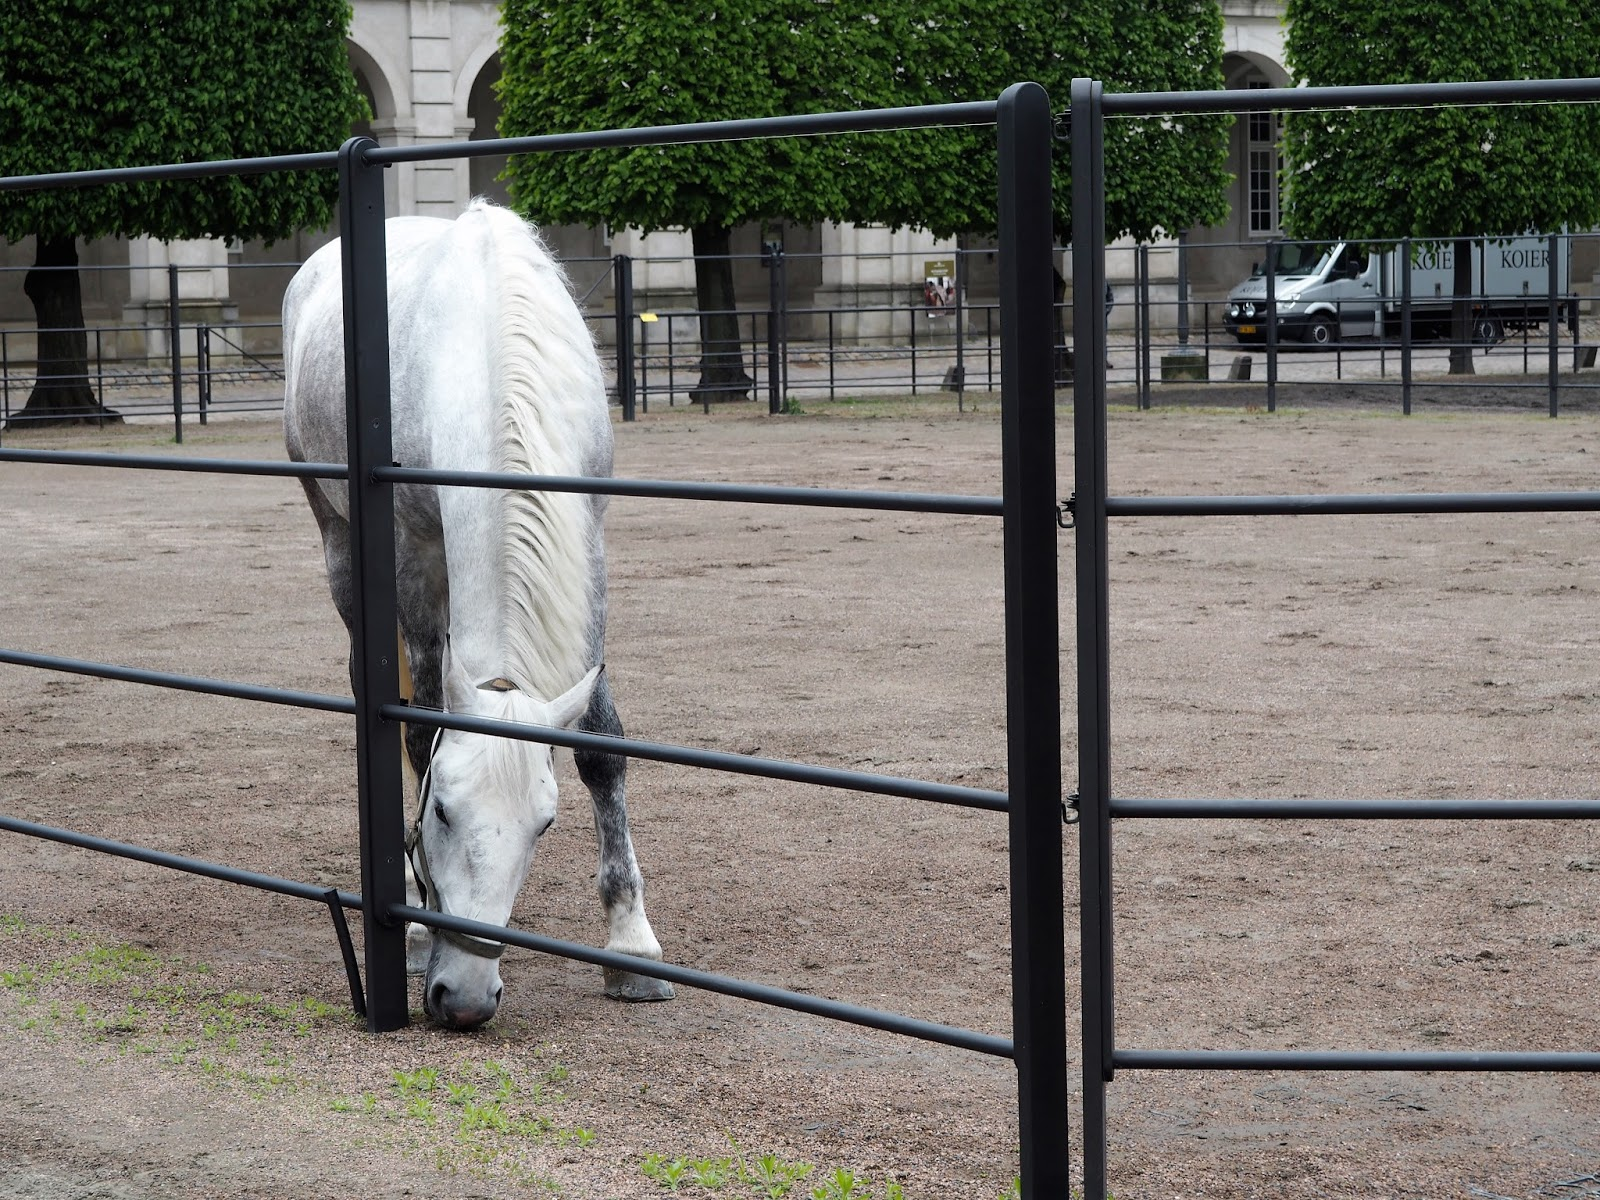 A white horse at Christiansborg Palace, Copenhagen